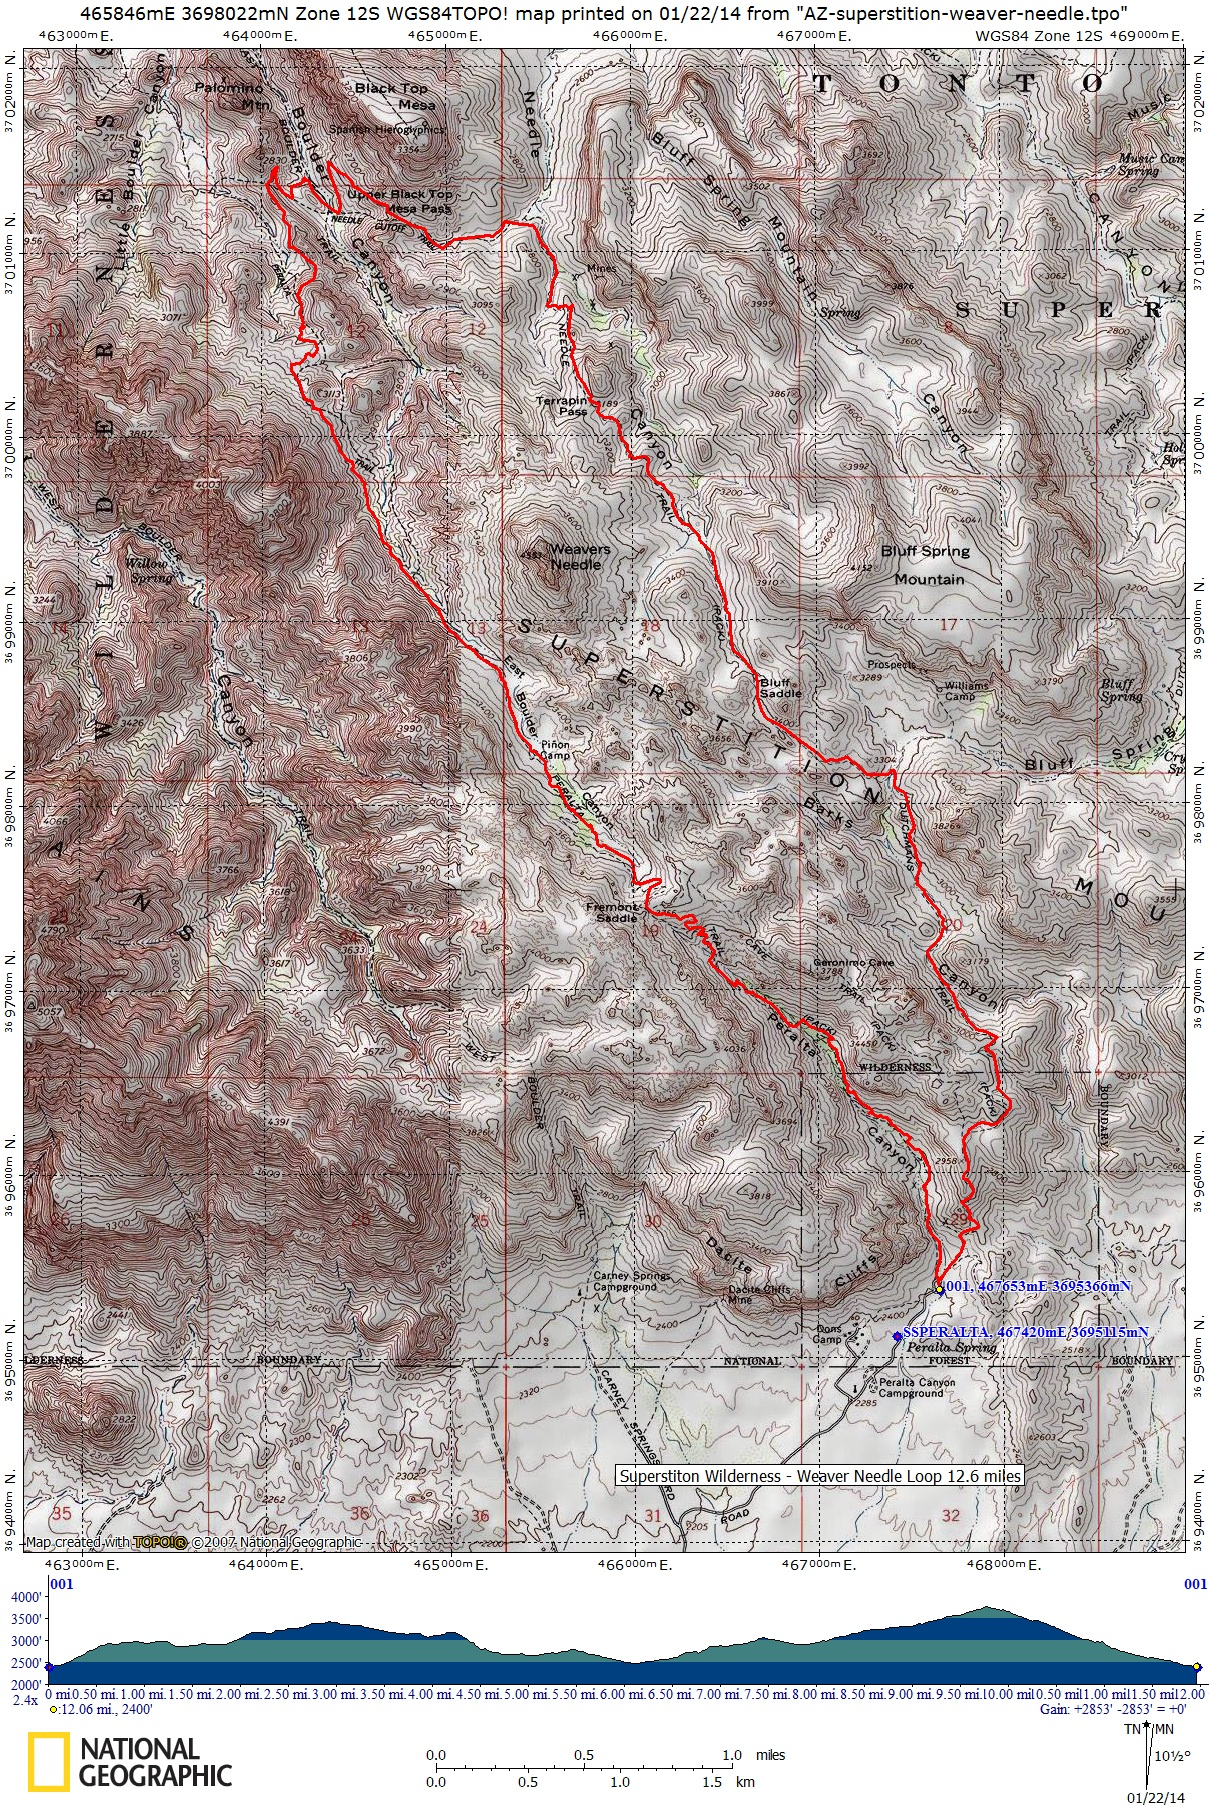 peralta th to weavers needle loop  miles (click the image to see themap). superstition wilderness black top mesa loop weaver needle loop